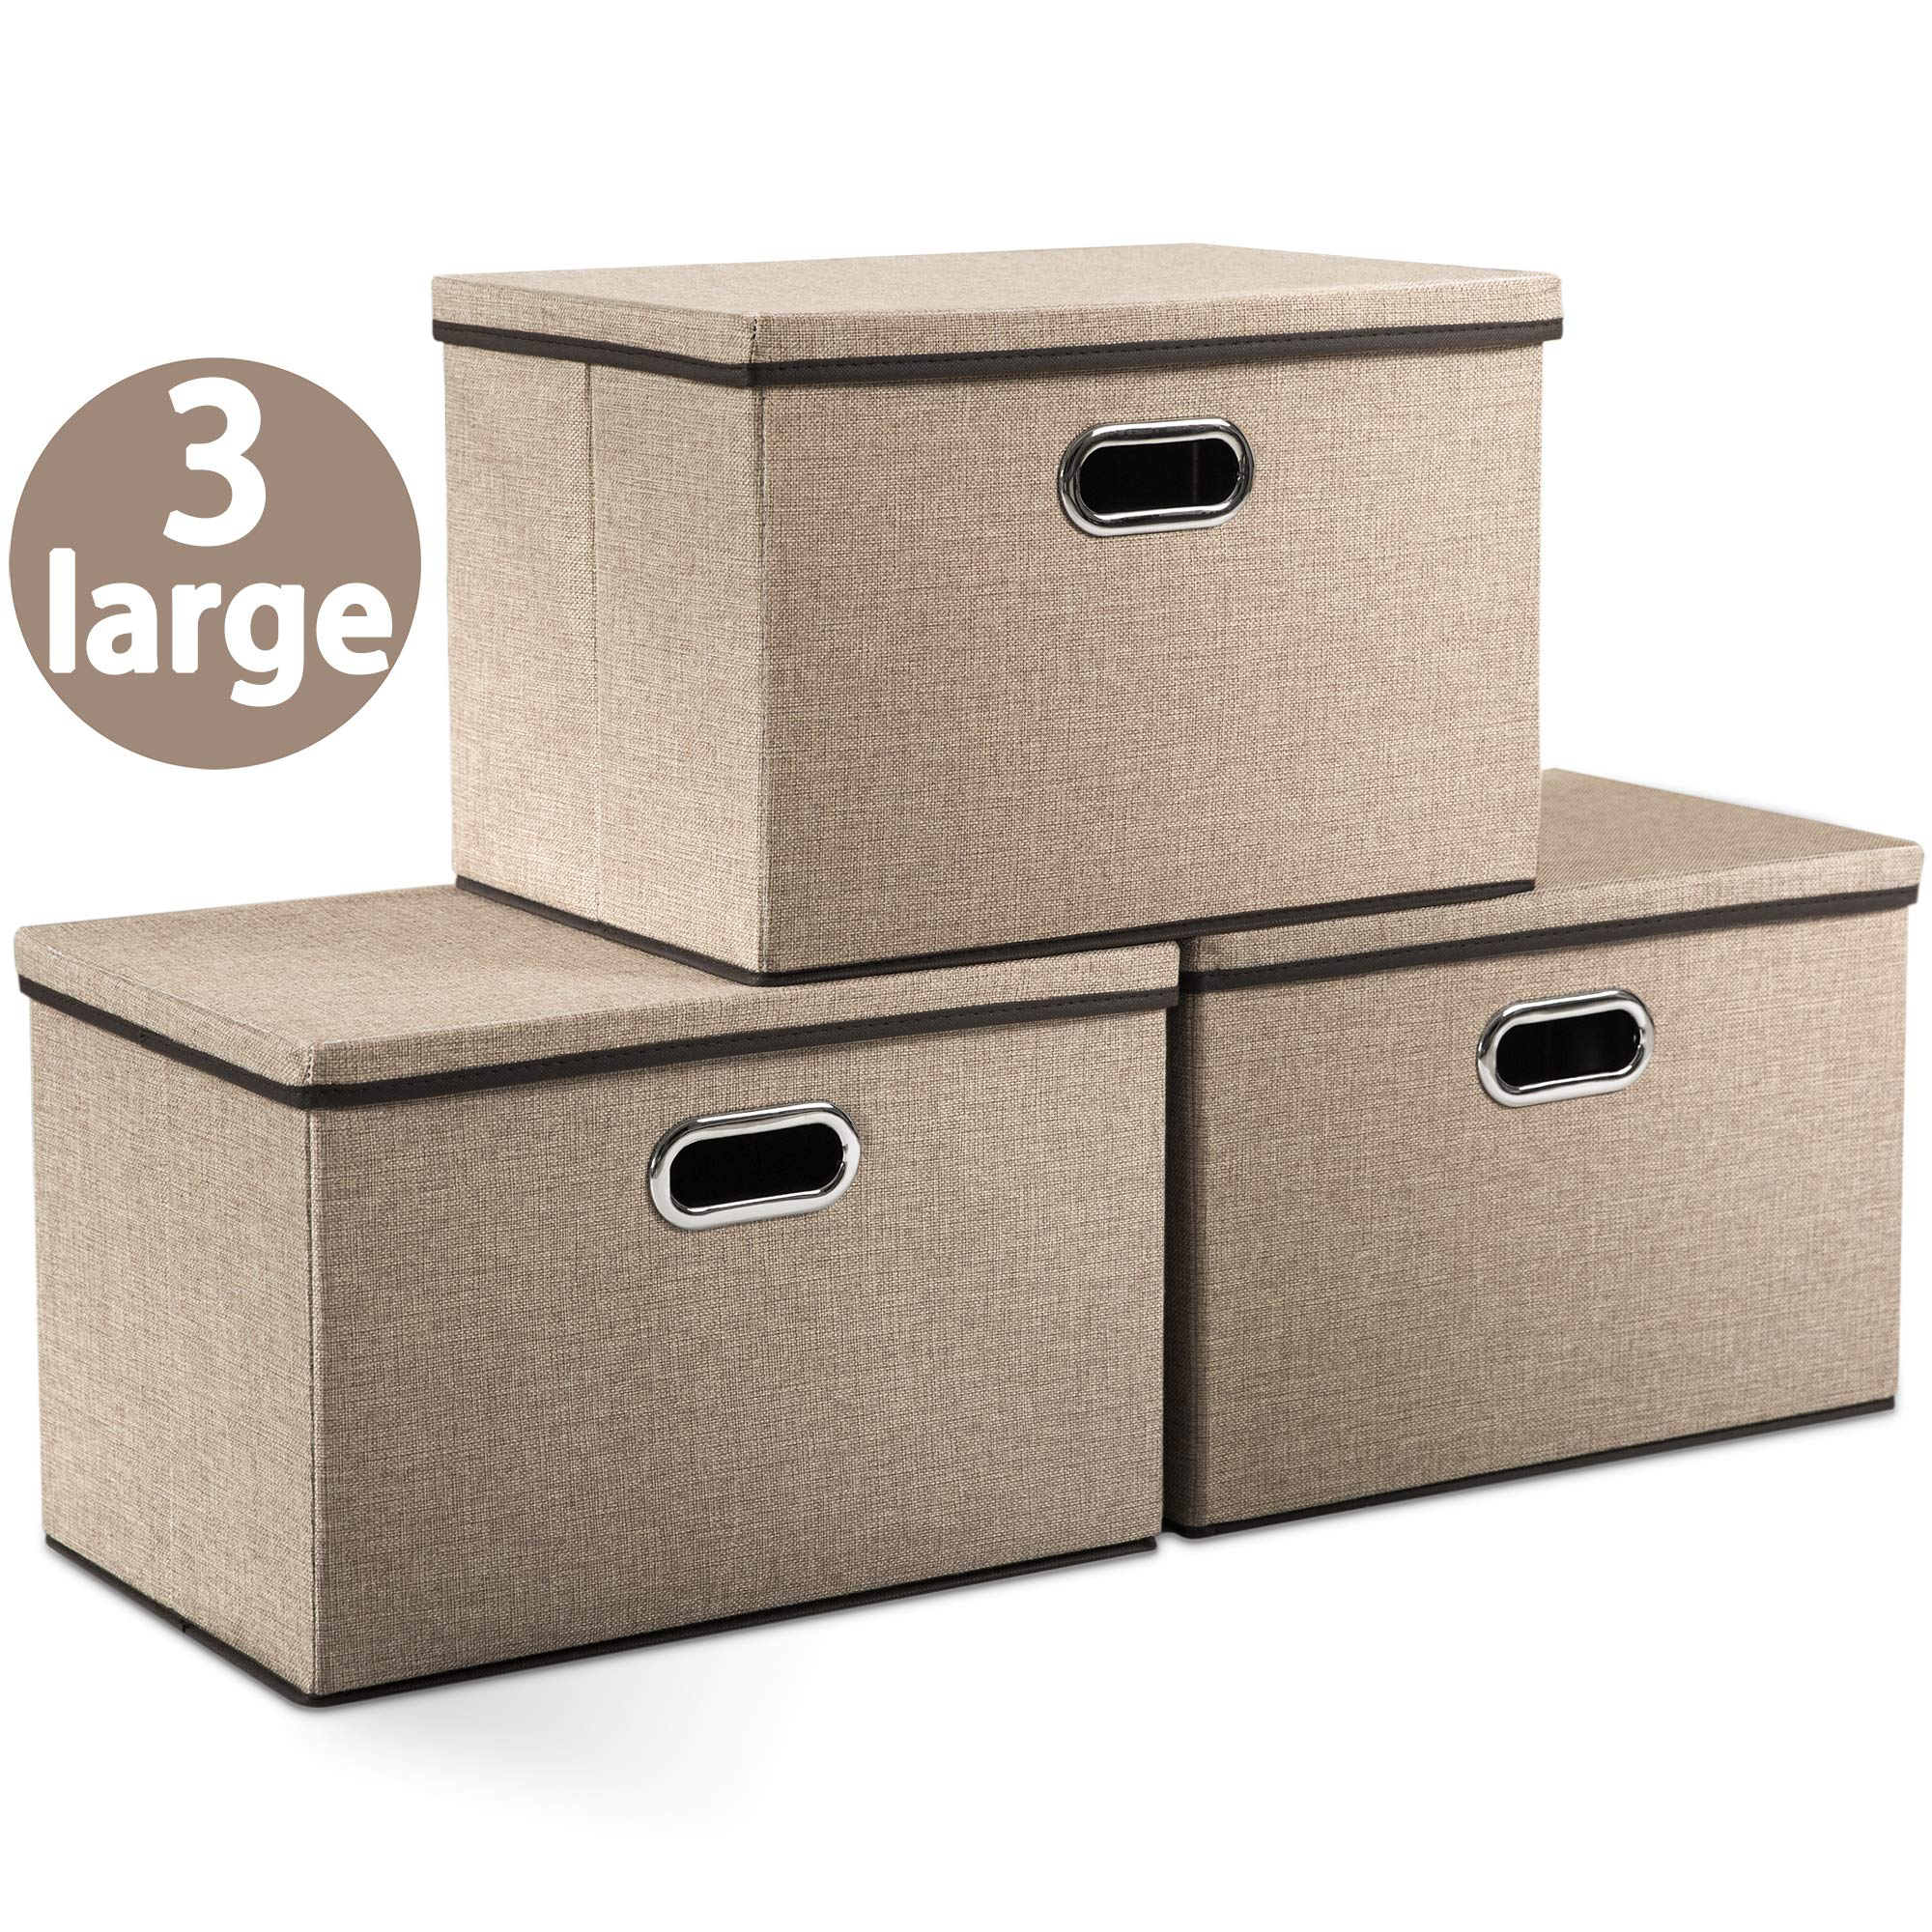 Prandom Large Foldable Storage Boxes with Lids [3-Pack] Jute Fabric Collapsible Storage Bins Organizer Containers Baskets Cube with Cover for Home Bedroom Closet Office Nursery (17.7x11.8x11.8) by Prandom